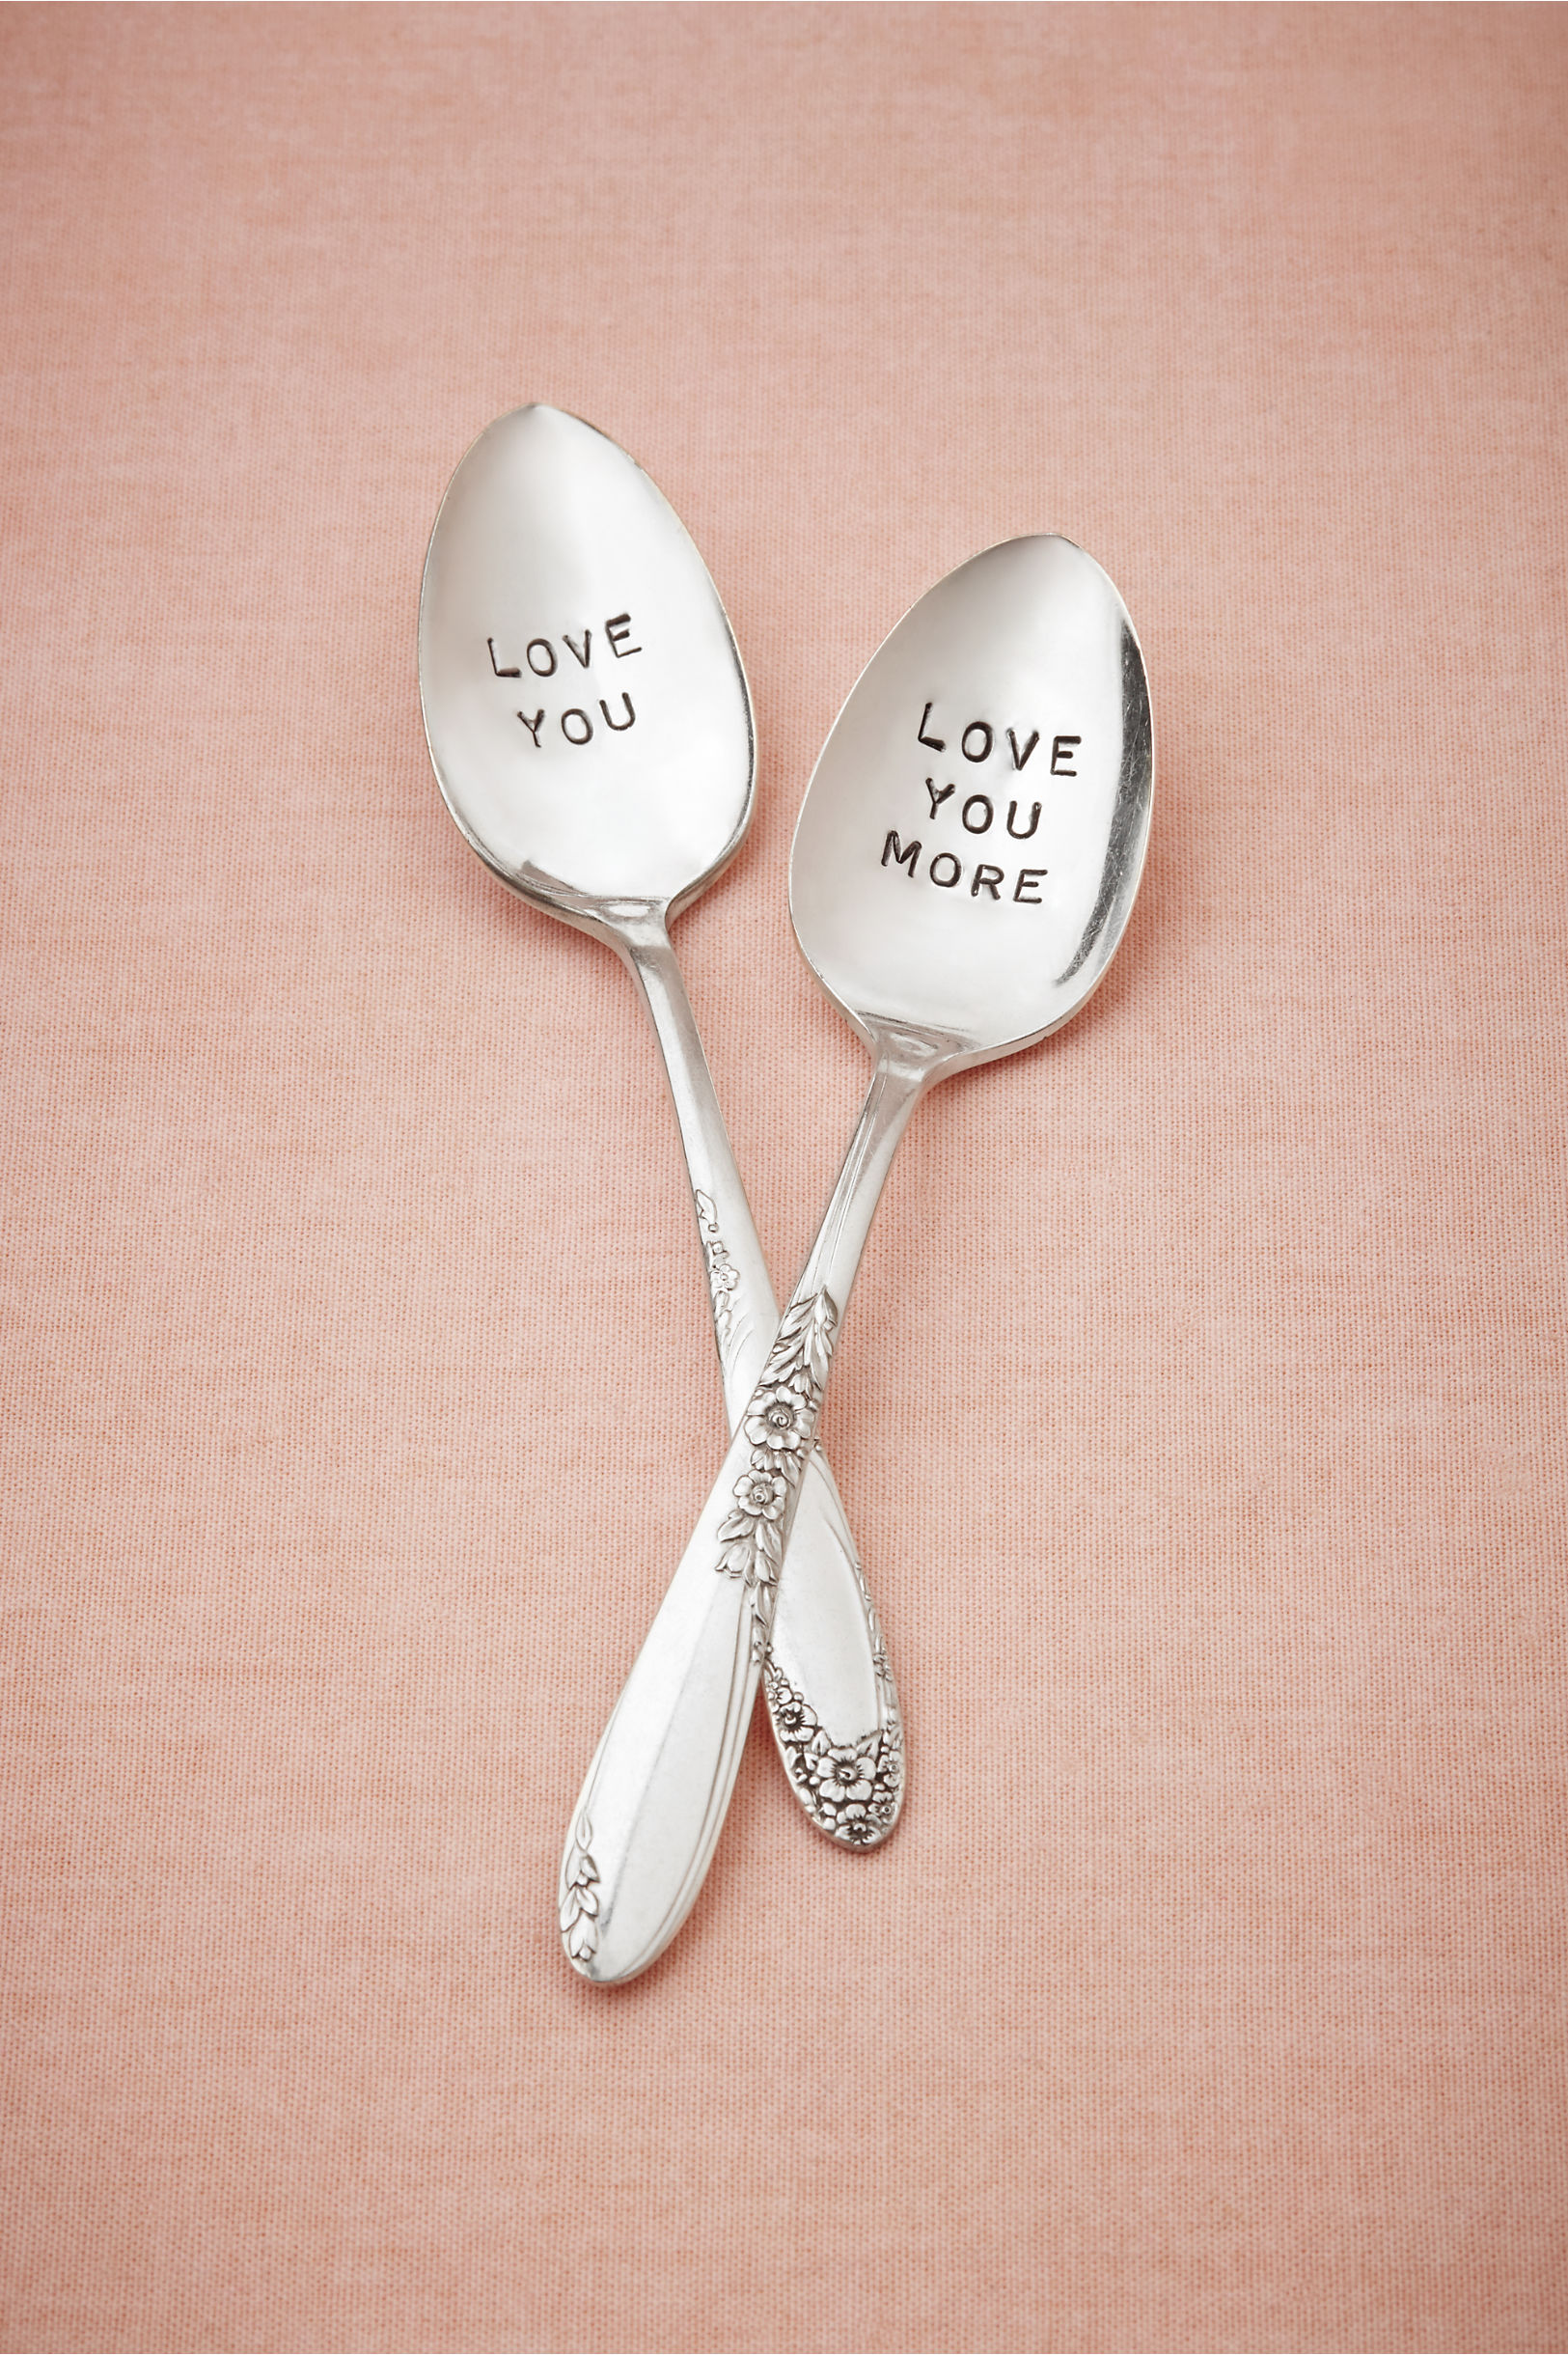 Love You More Spoon Set